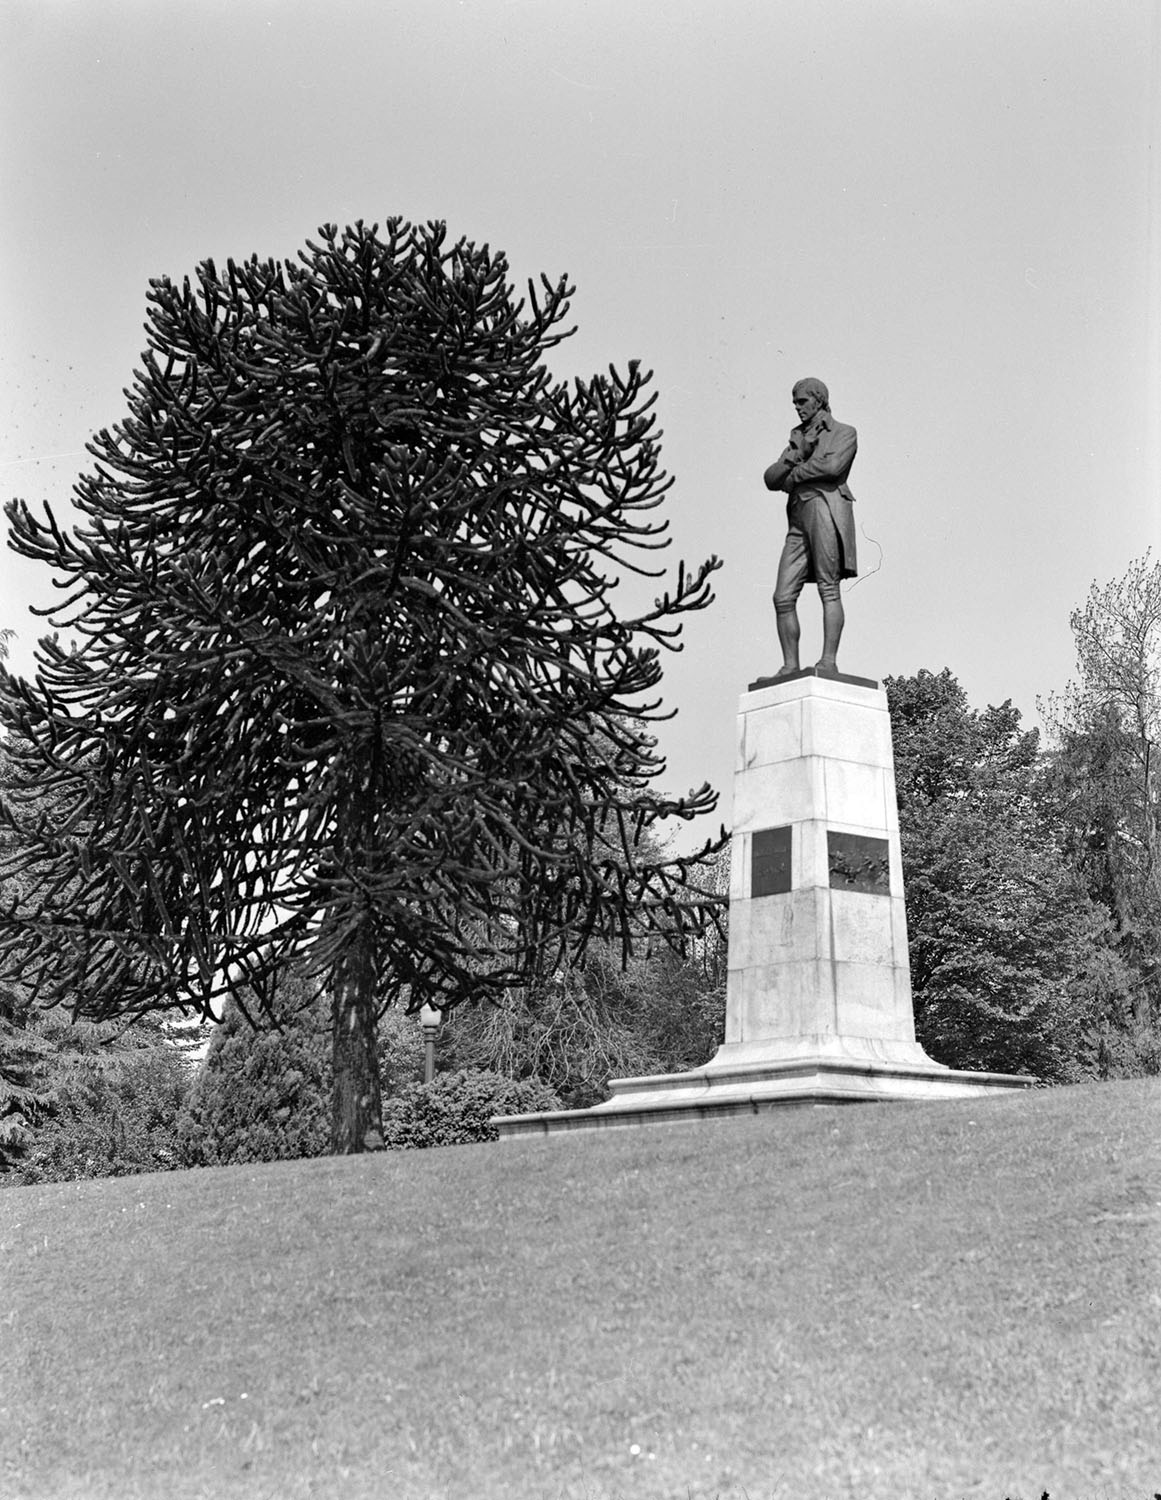 Robert Burns statue in Stanley Park, 1940s. Jack Lindsay, photographer. Reference code AM1184-S1-: CVA 1184-2705.